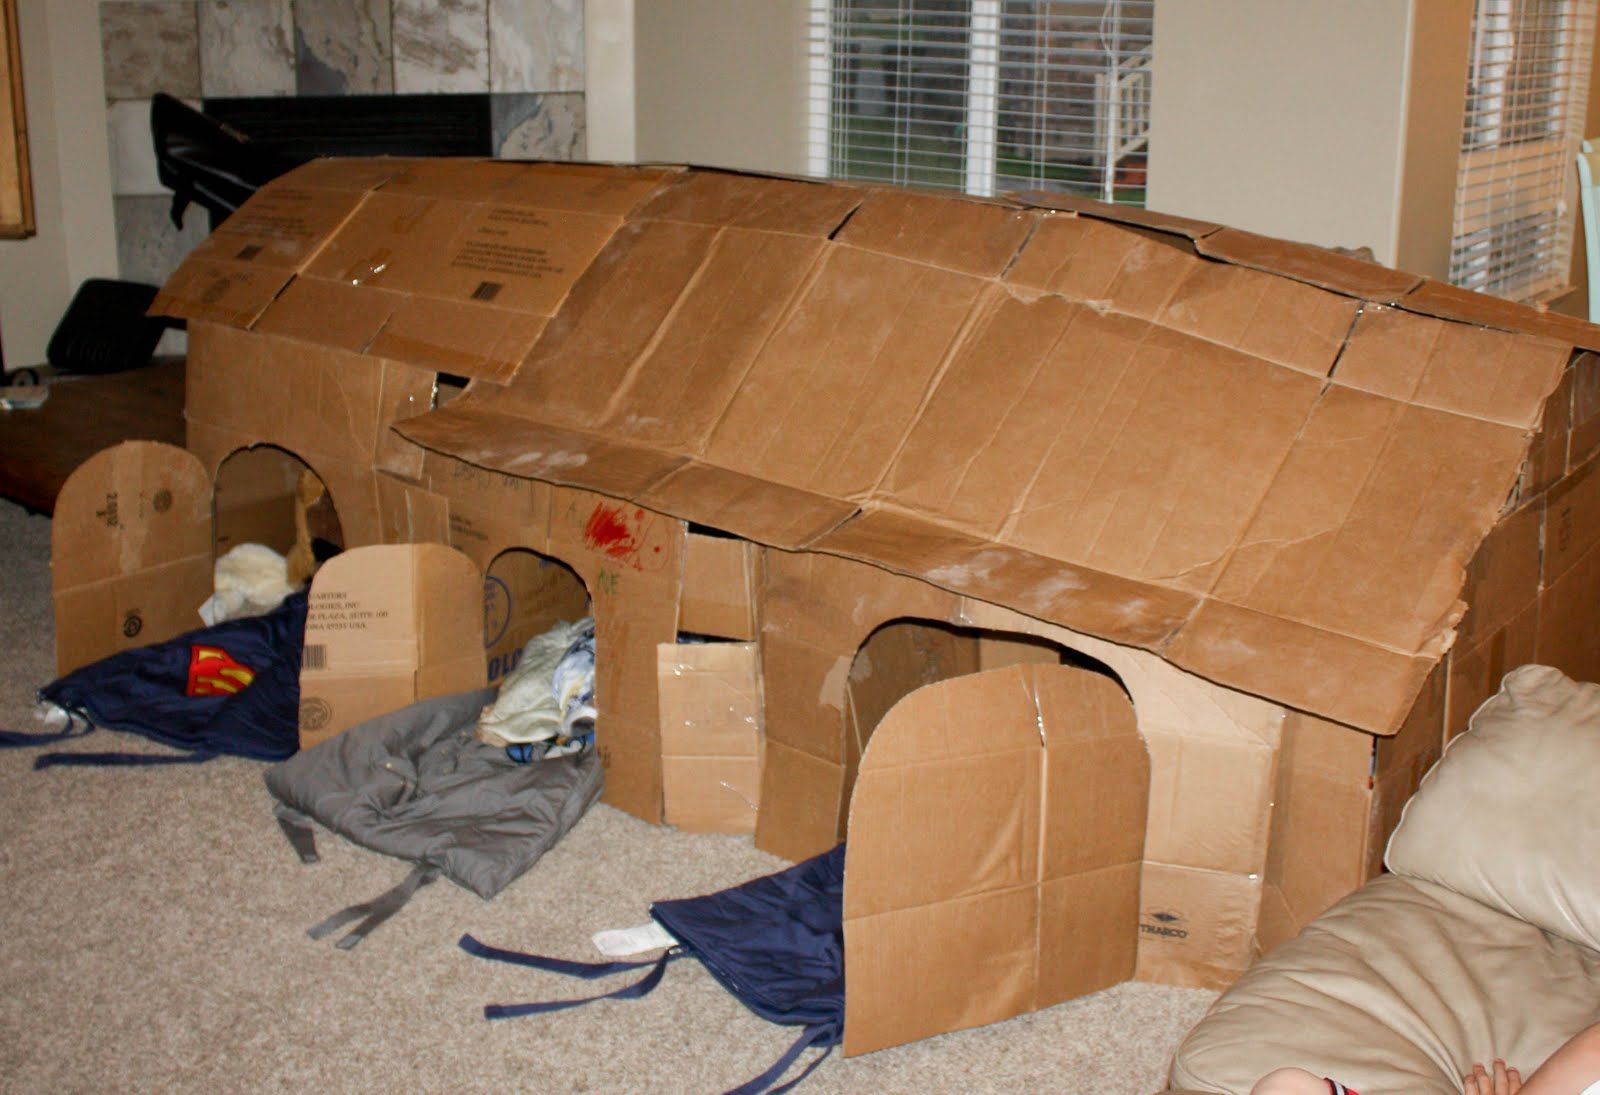 how to make a homemade fort